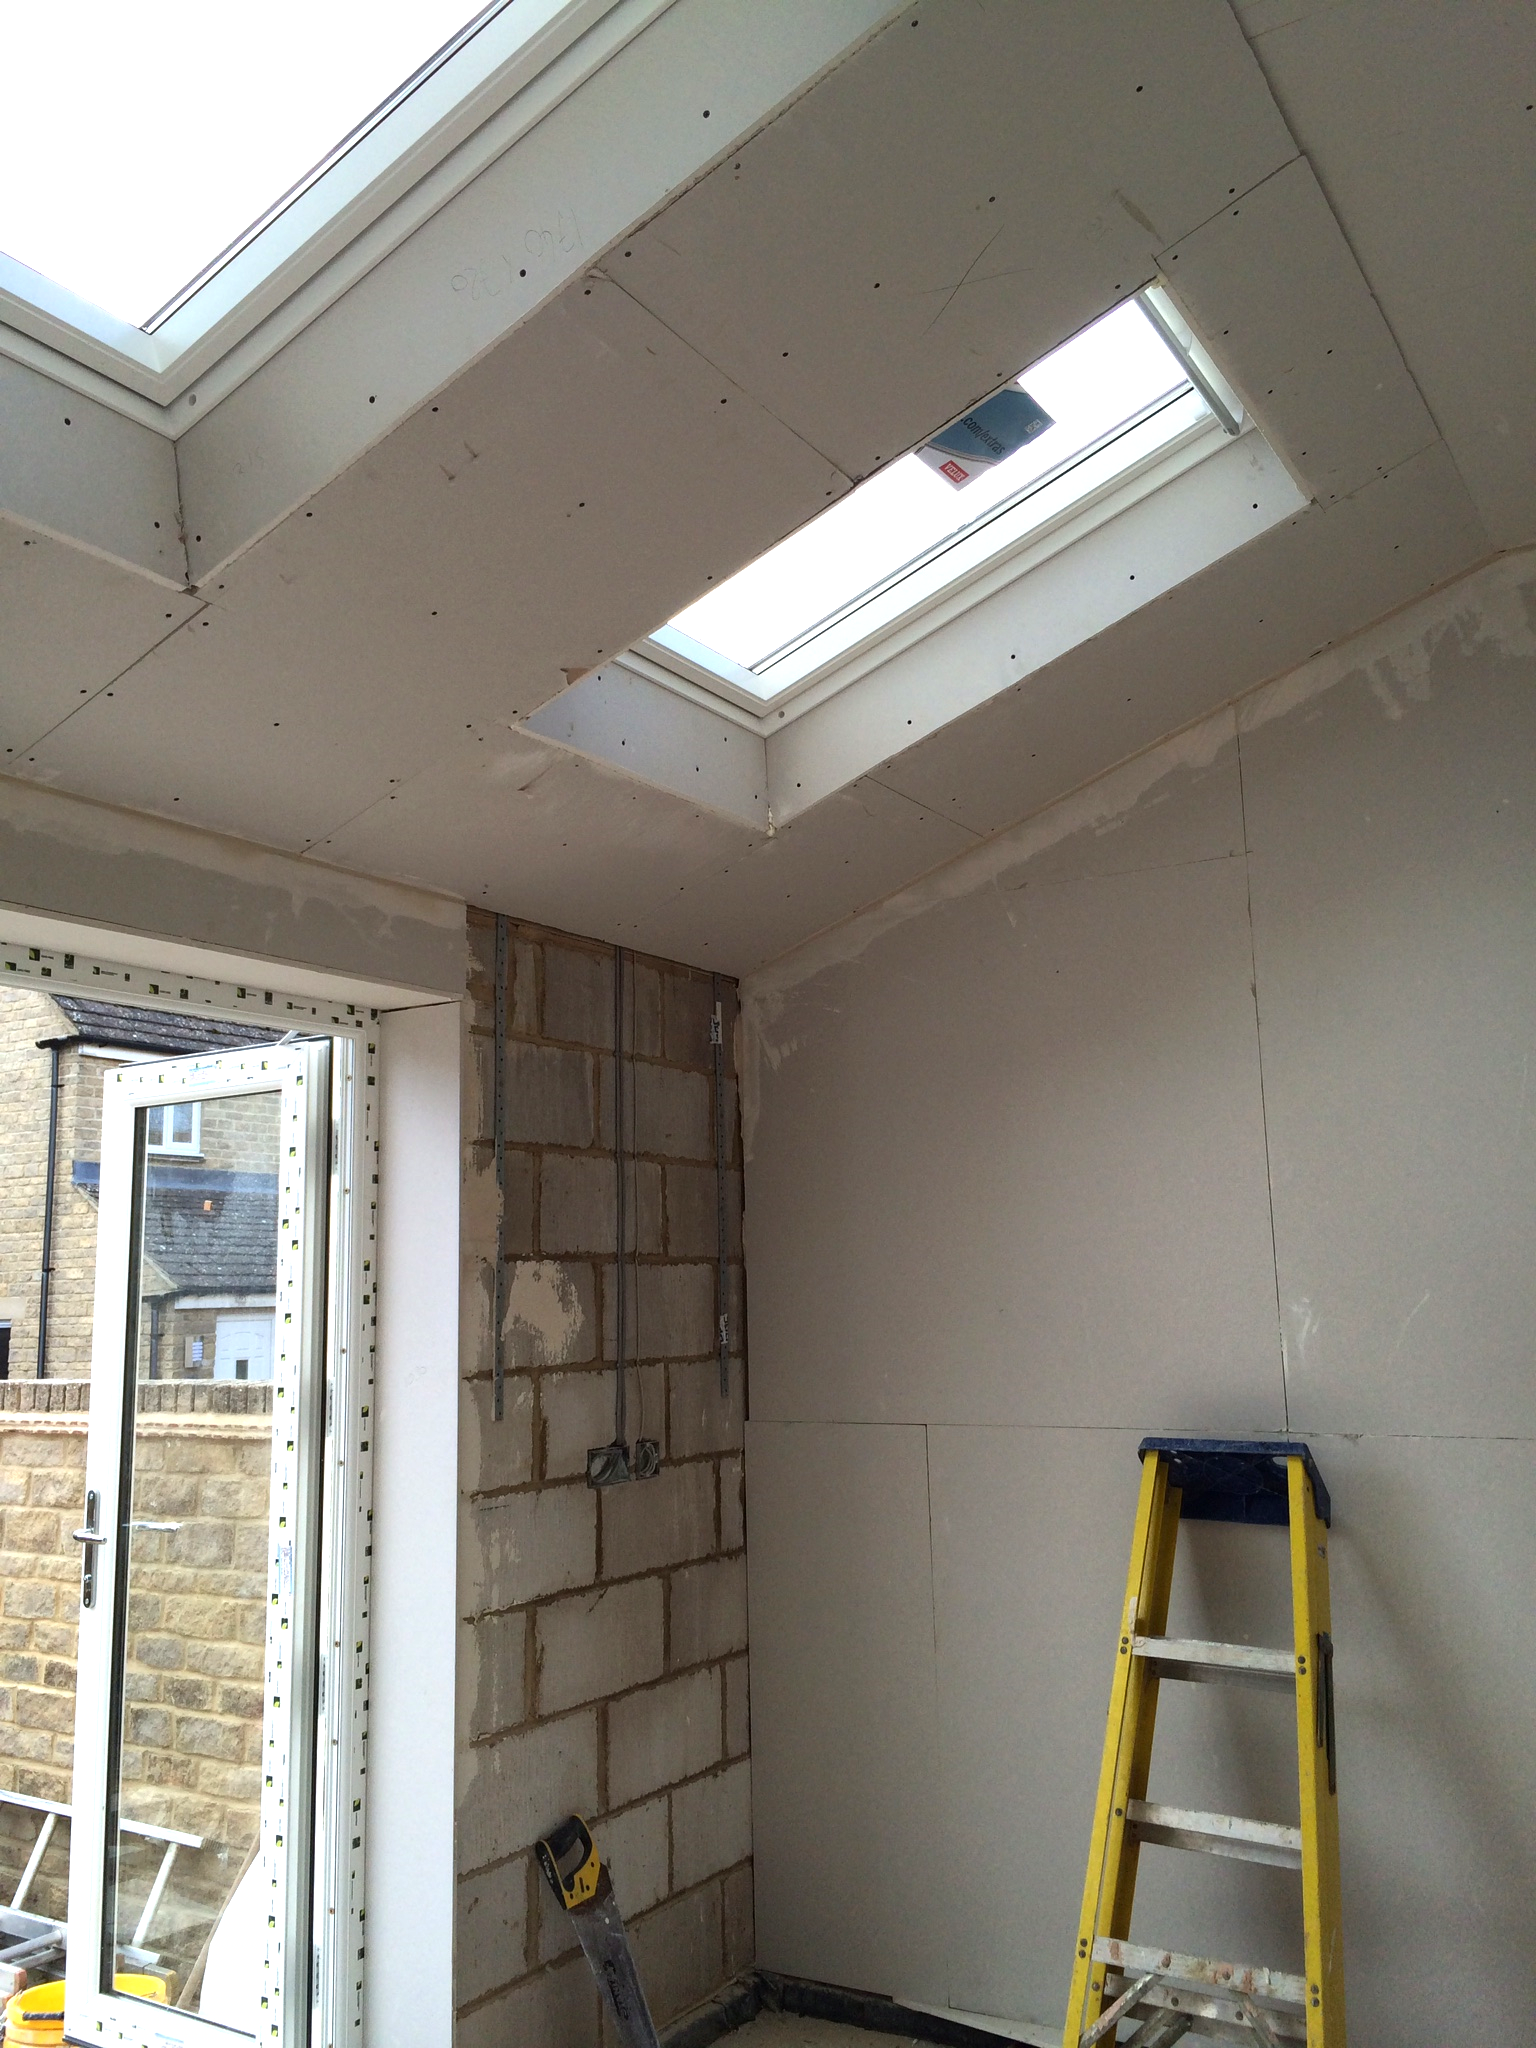 Once the plasterboard goes in the room really starts to take shape.